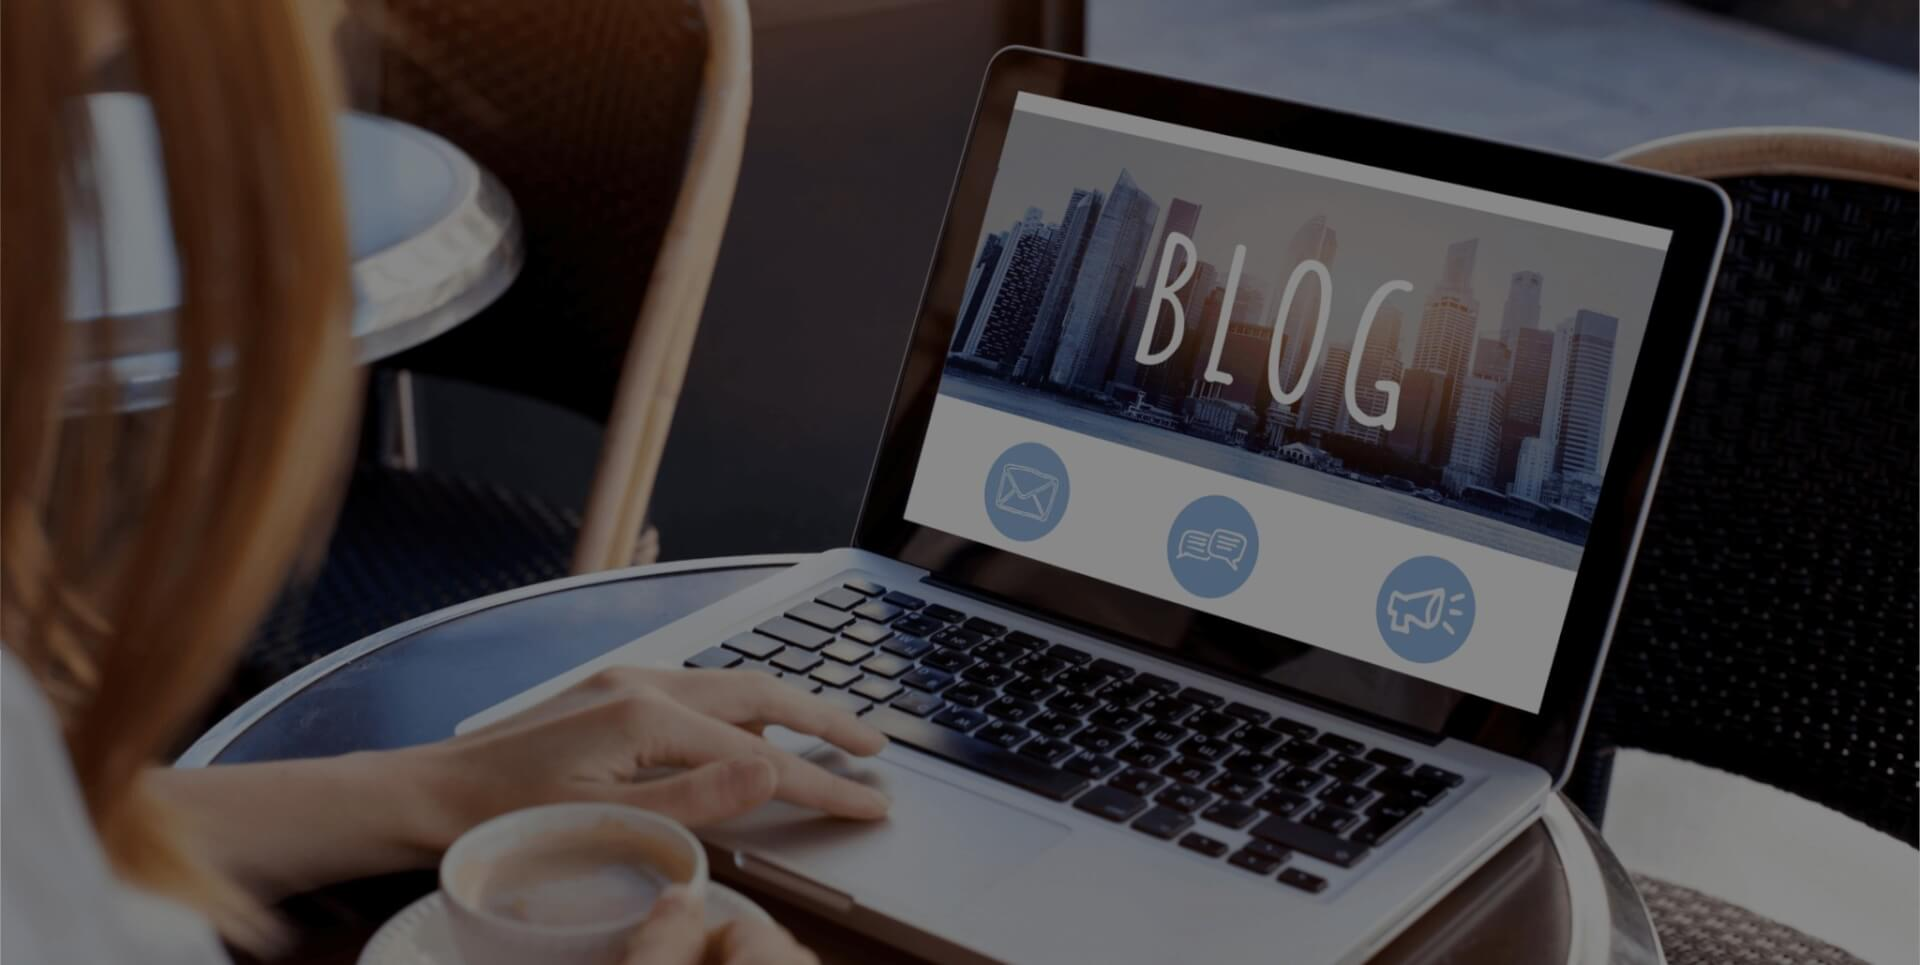 Blogging Services Newcastle